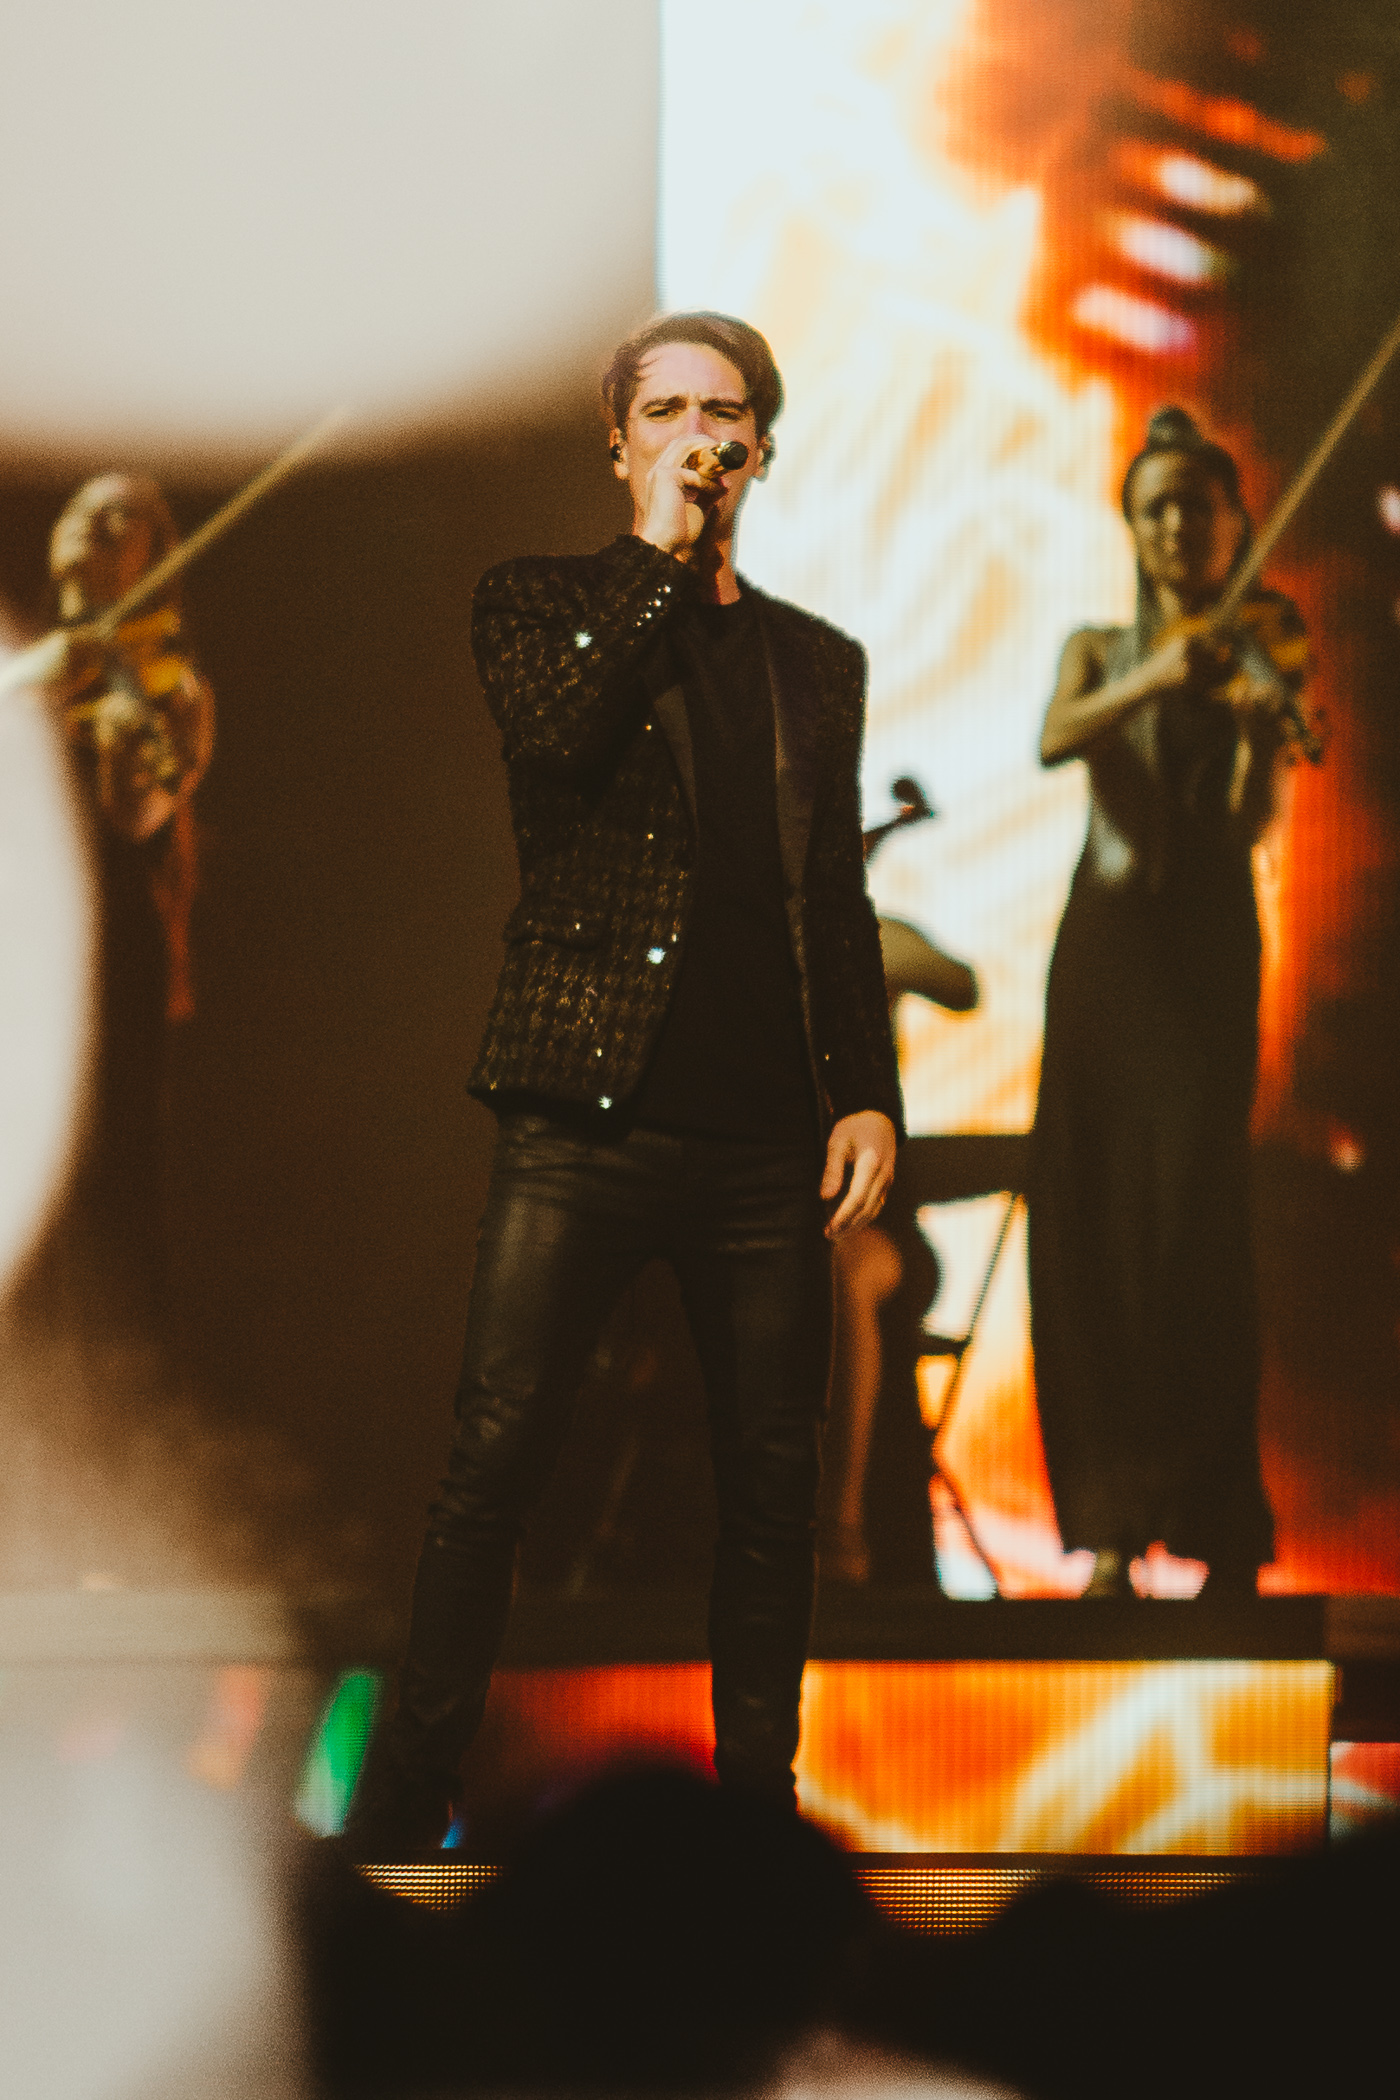 1_Panic!_At_The_Disco-Rogers_Arena-Timothy_Nguyen-20180811-9.jpg